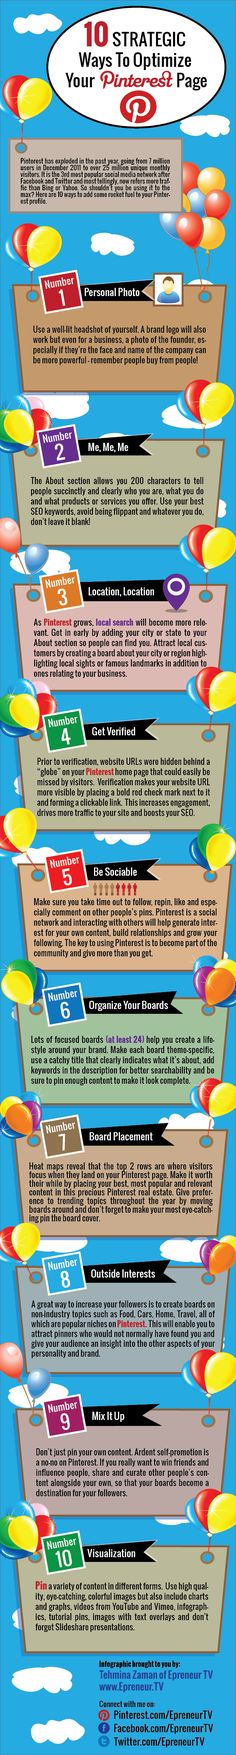 10 Strategic Ways to Optimize Your Pinterest Page – Infographic  Read more at http://www.jeffbullas.com/2012/12/03/10-strategic-ways-to-optimize-your-pinterest-page-infographic/#ftHwz02xoUdE05wk.99